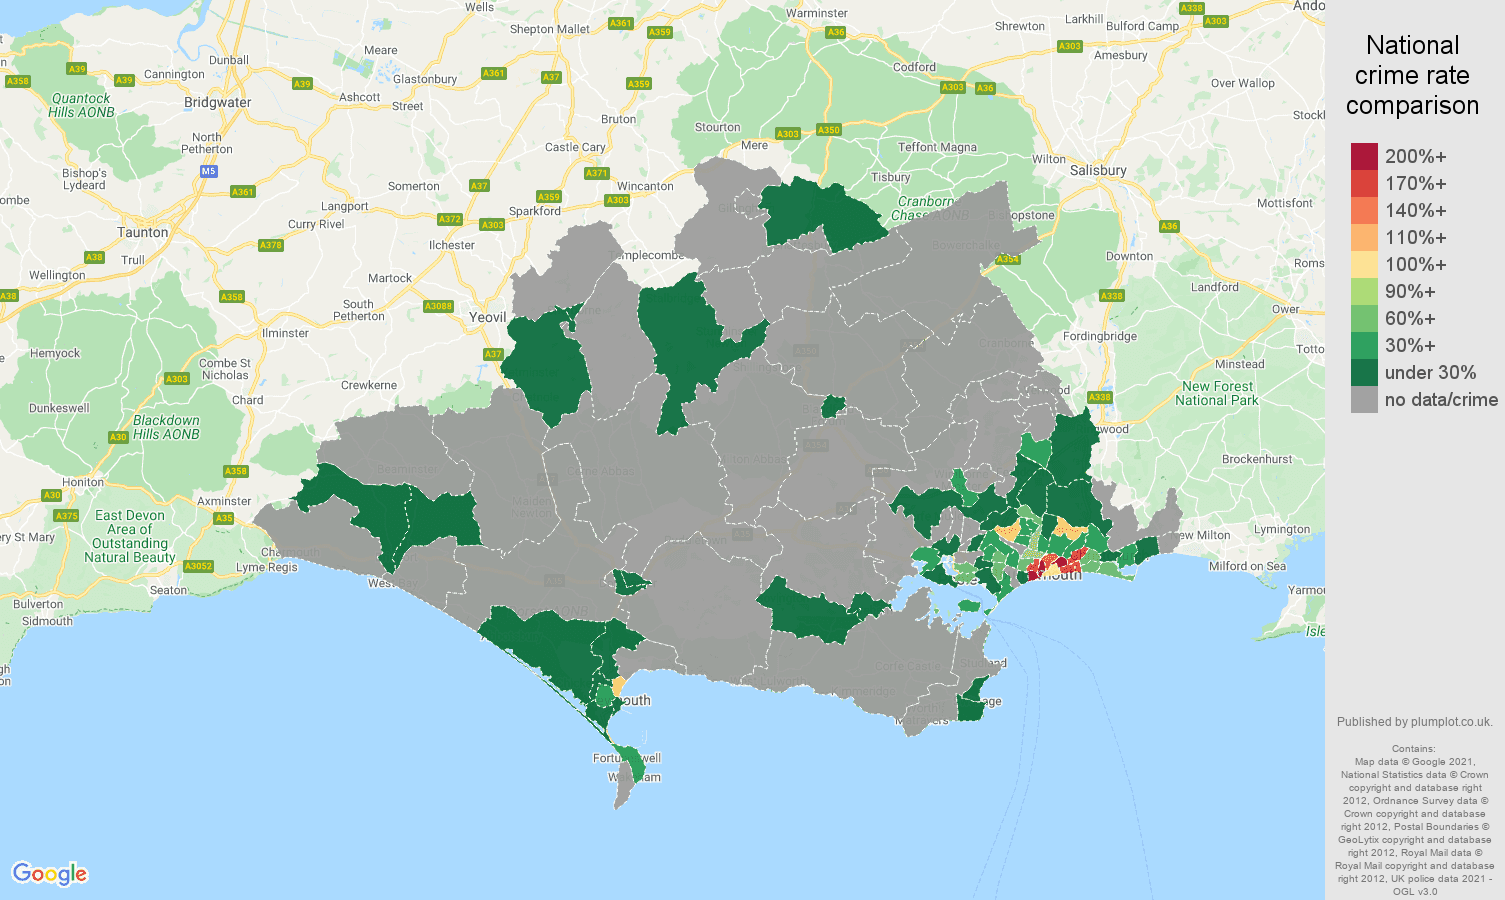 Dorset robbery crime rate comparison map